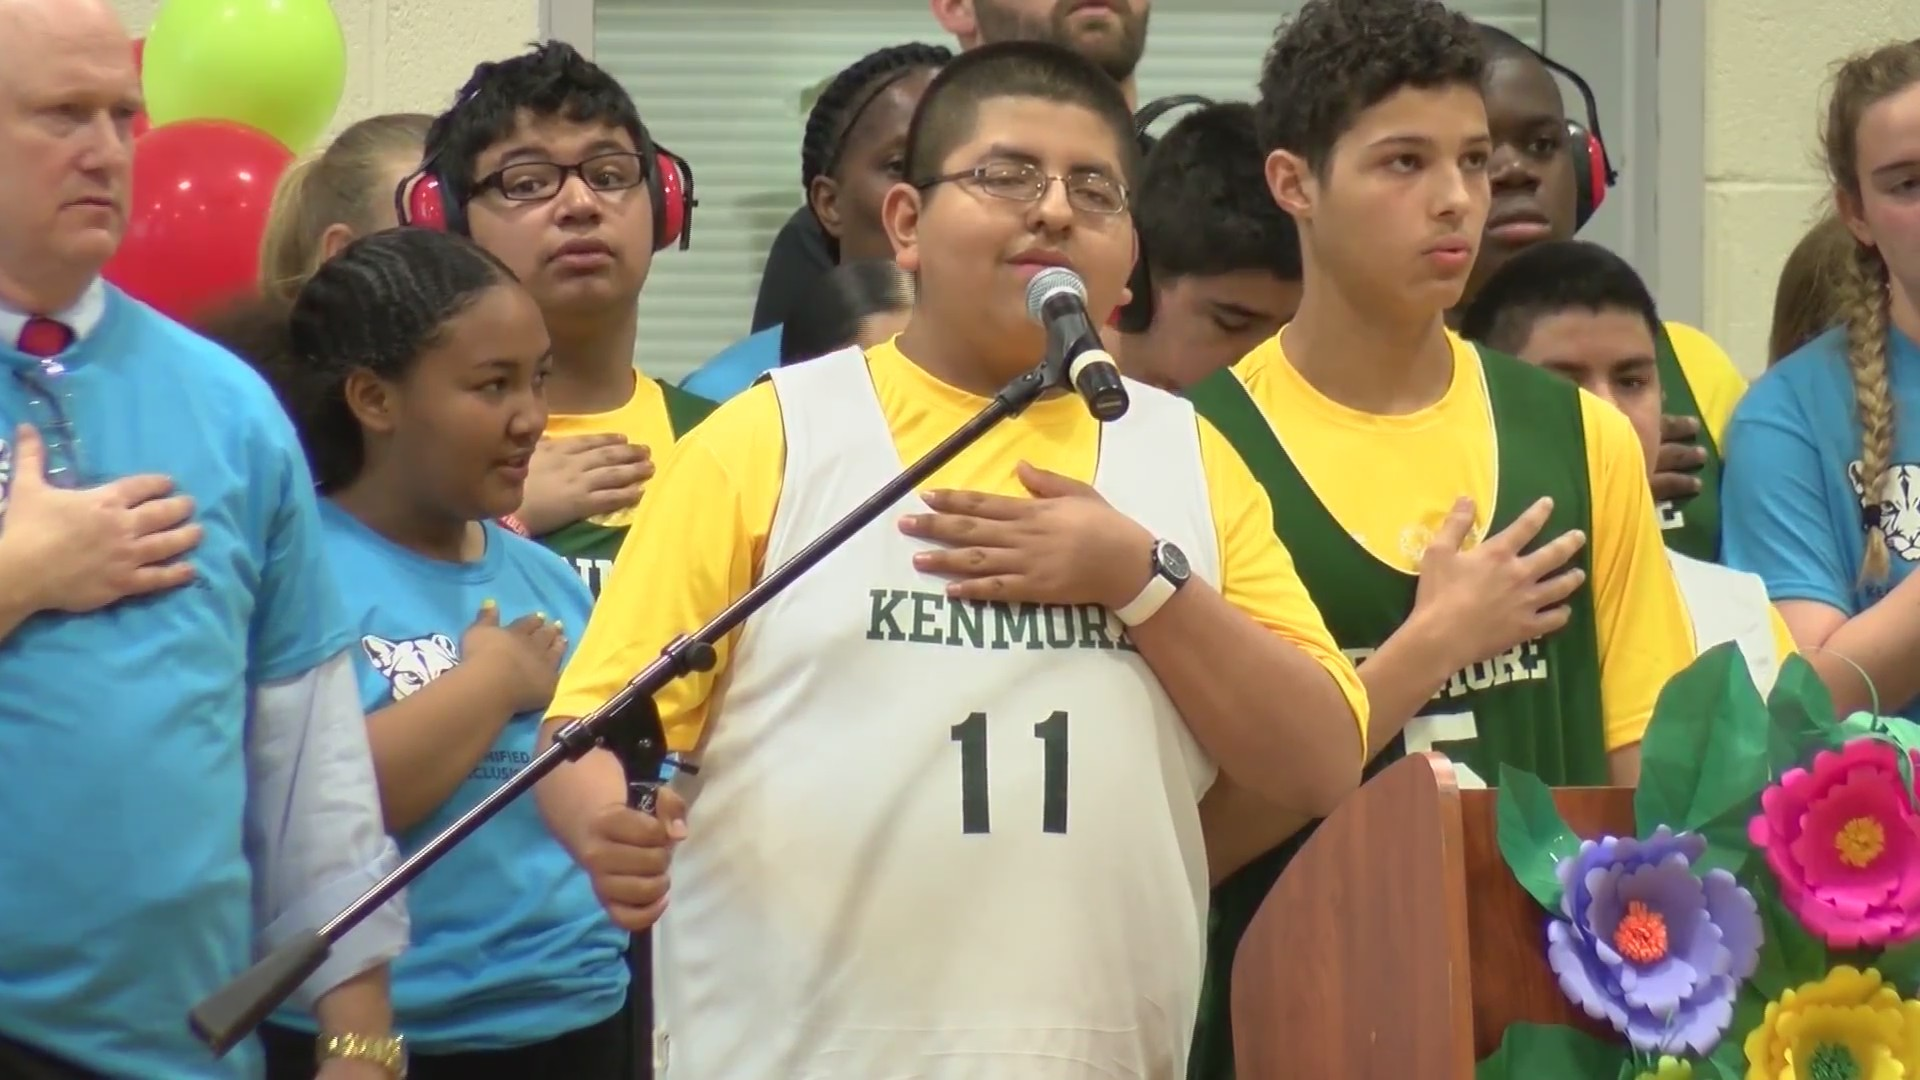 Special_Olympics_Kenmore_0_20190412233943